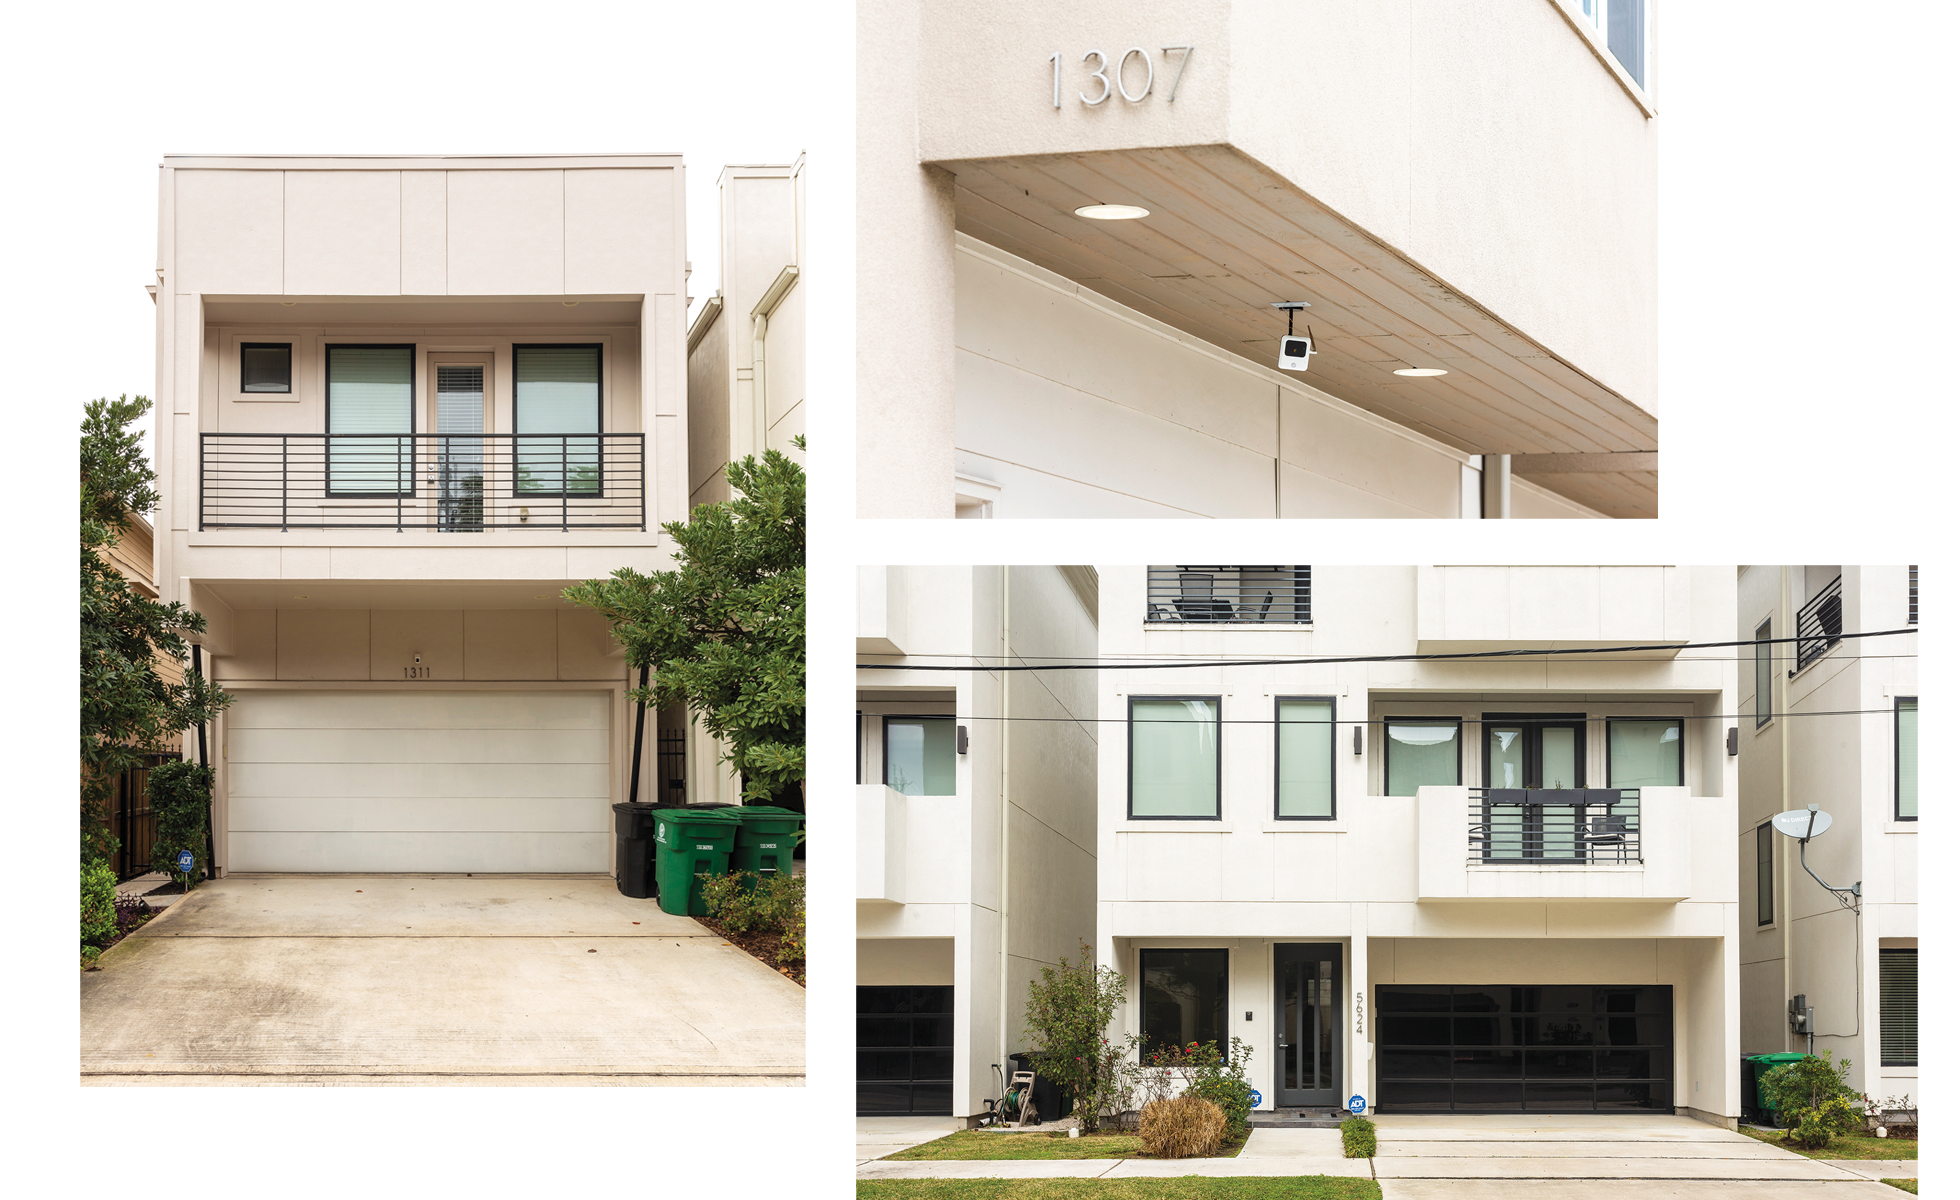 Midtown, Houston—This is a classic new Texas triptych. Balconies that aren't usable. Landscaping that is barely even decorative, let alone functional. Even some surveillance capitalism, as a treat. Maybe the saddest part is how few new Texas houses have porches, one of the features of older residential architecture that served as a gesture of welcome.